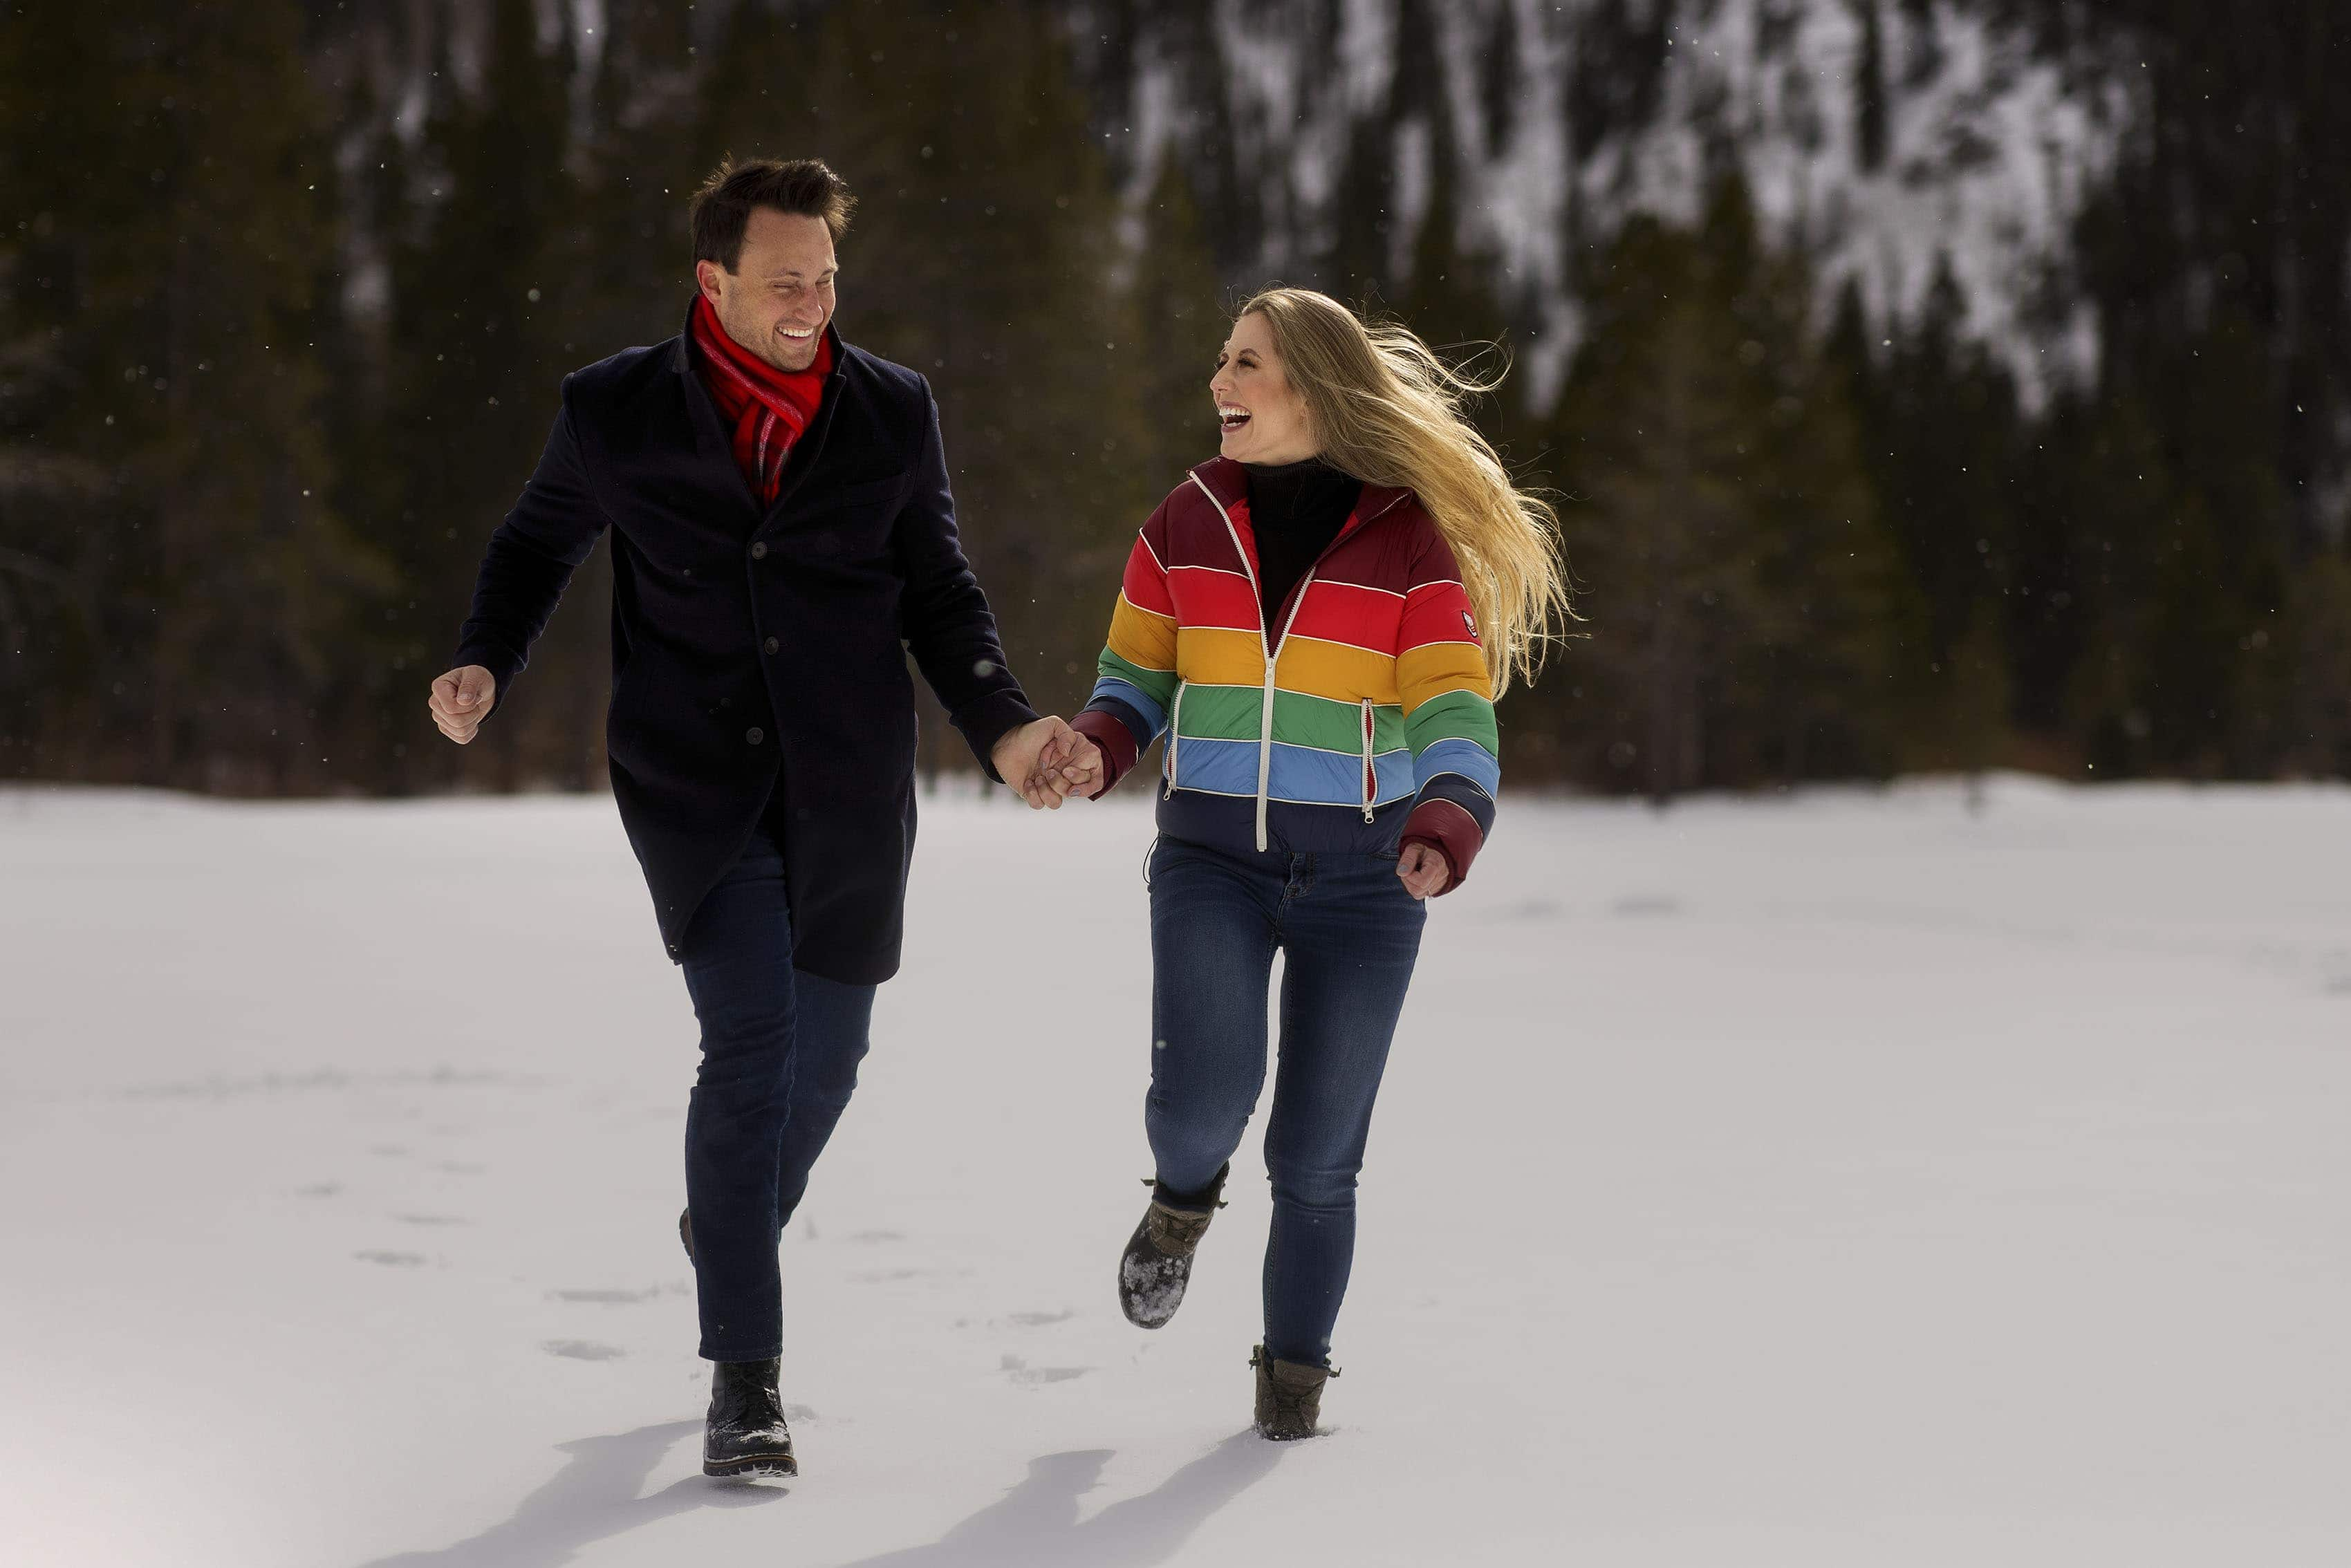 Brad and Nicole run and laugh in the snow during their snowy summit county engagement photos at Officers Gulch